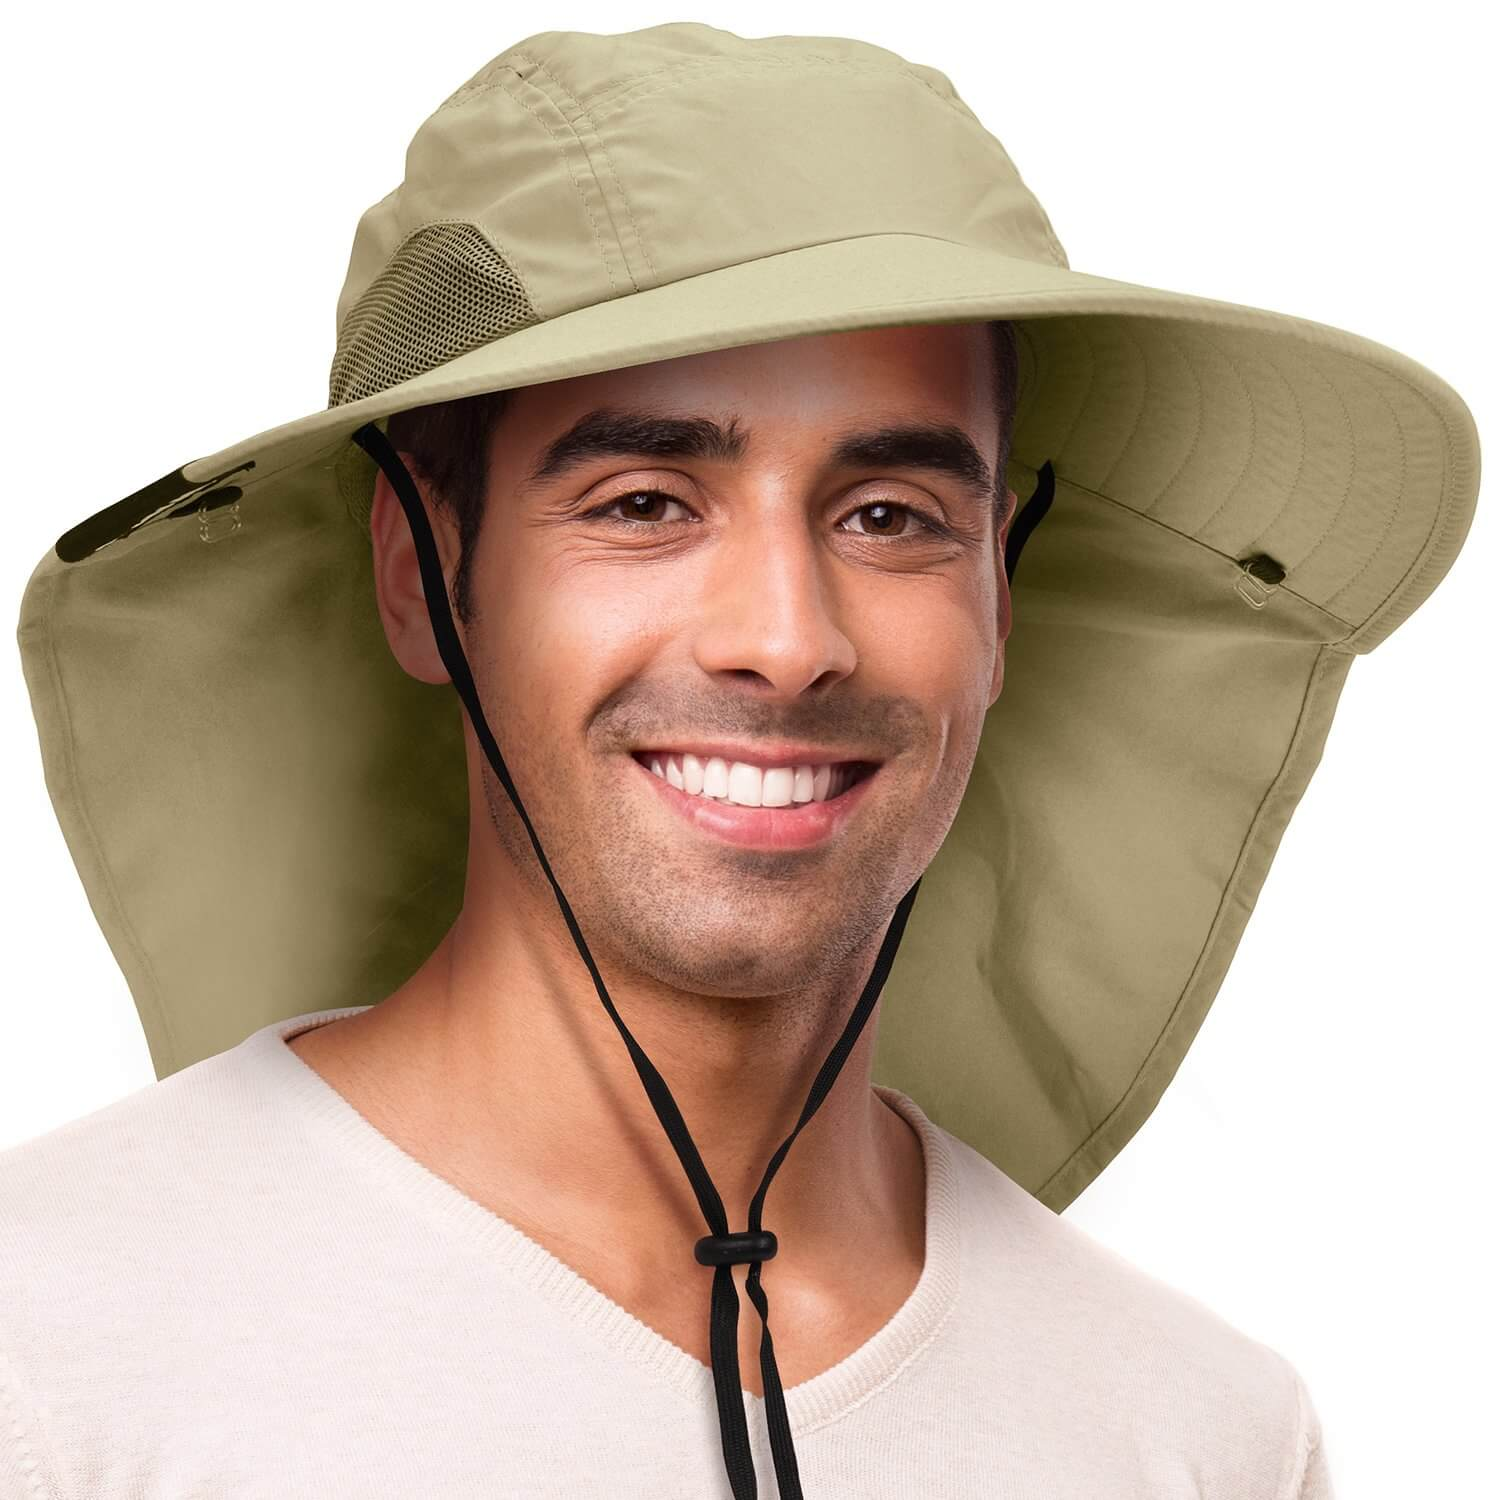 9 Solaris Outdoor Hat with Ear Neck Flap Cover - Wide Brim Sun Protection Unisex Gardening Cap